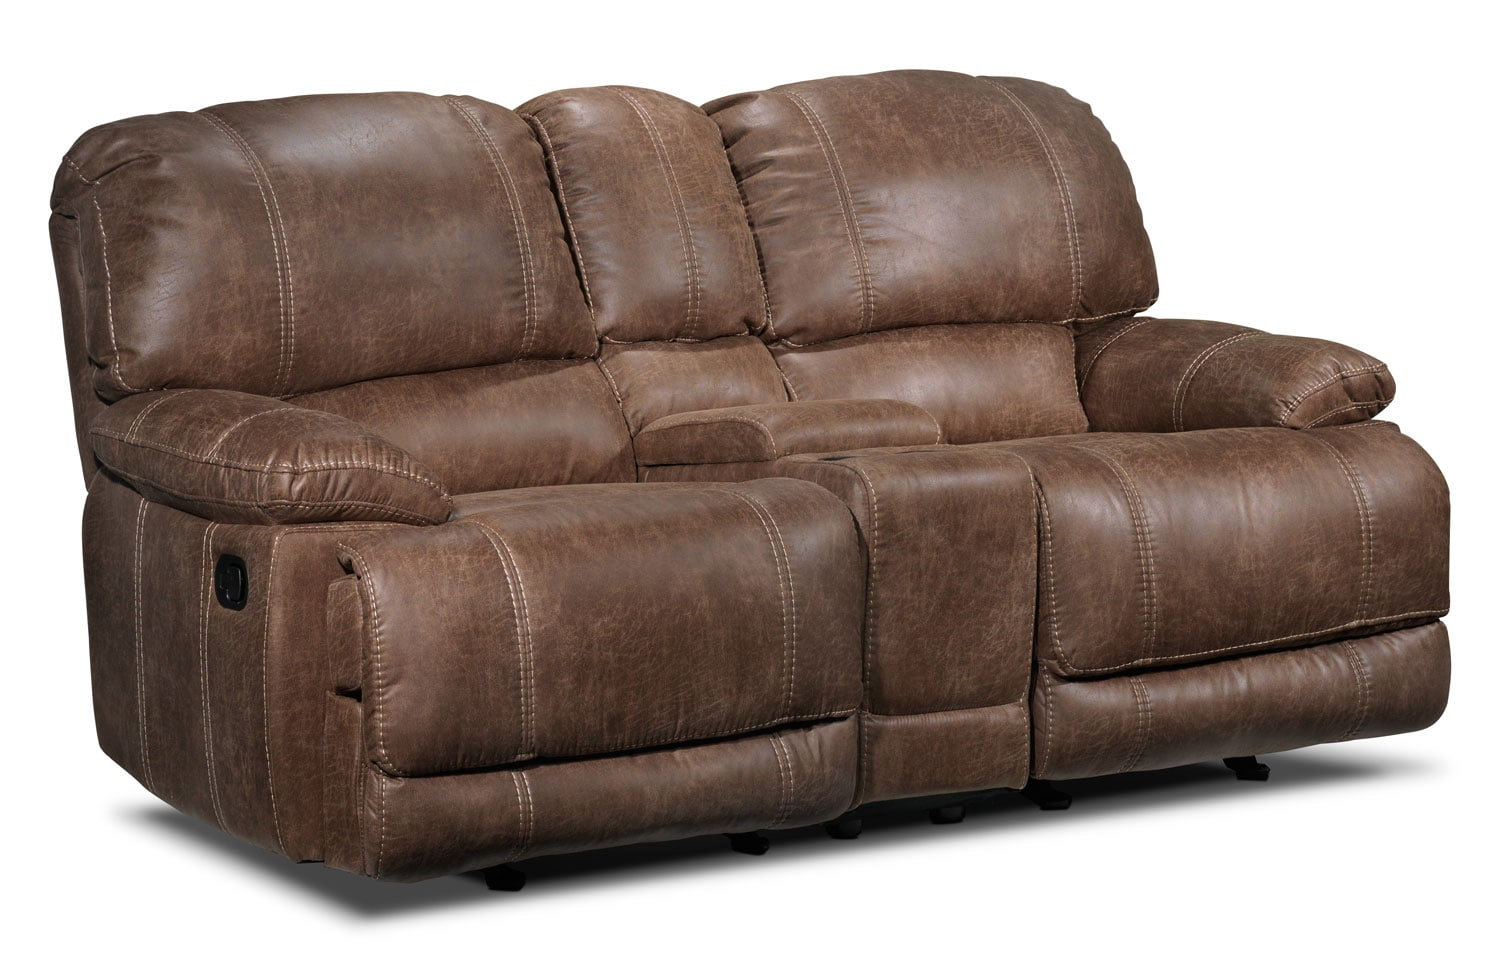 Durango Reclining Loveseat w/ Console - Saddle Brown